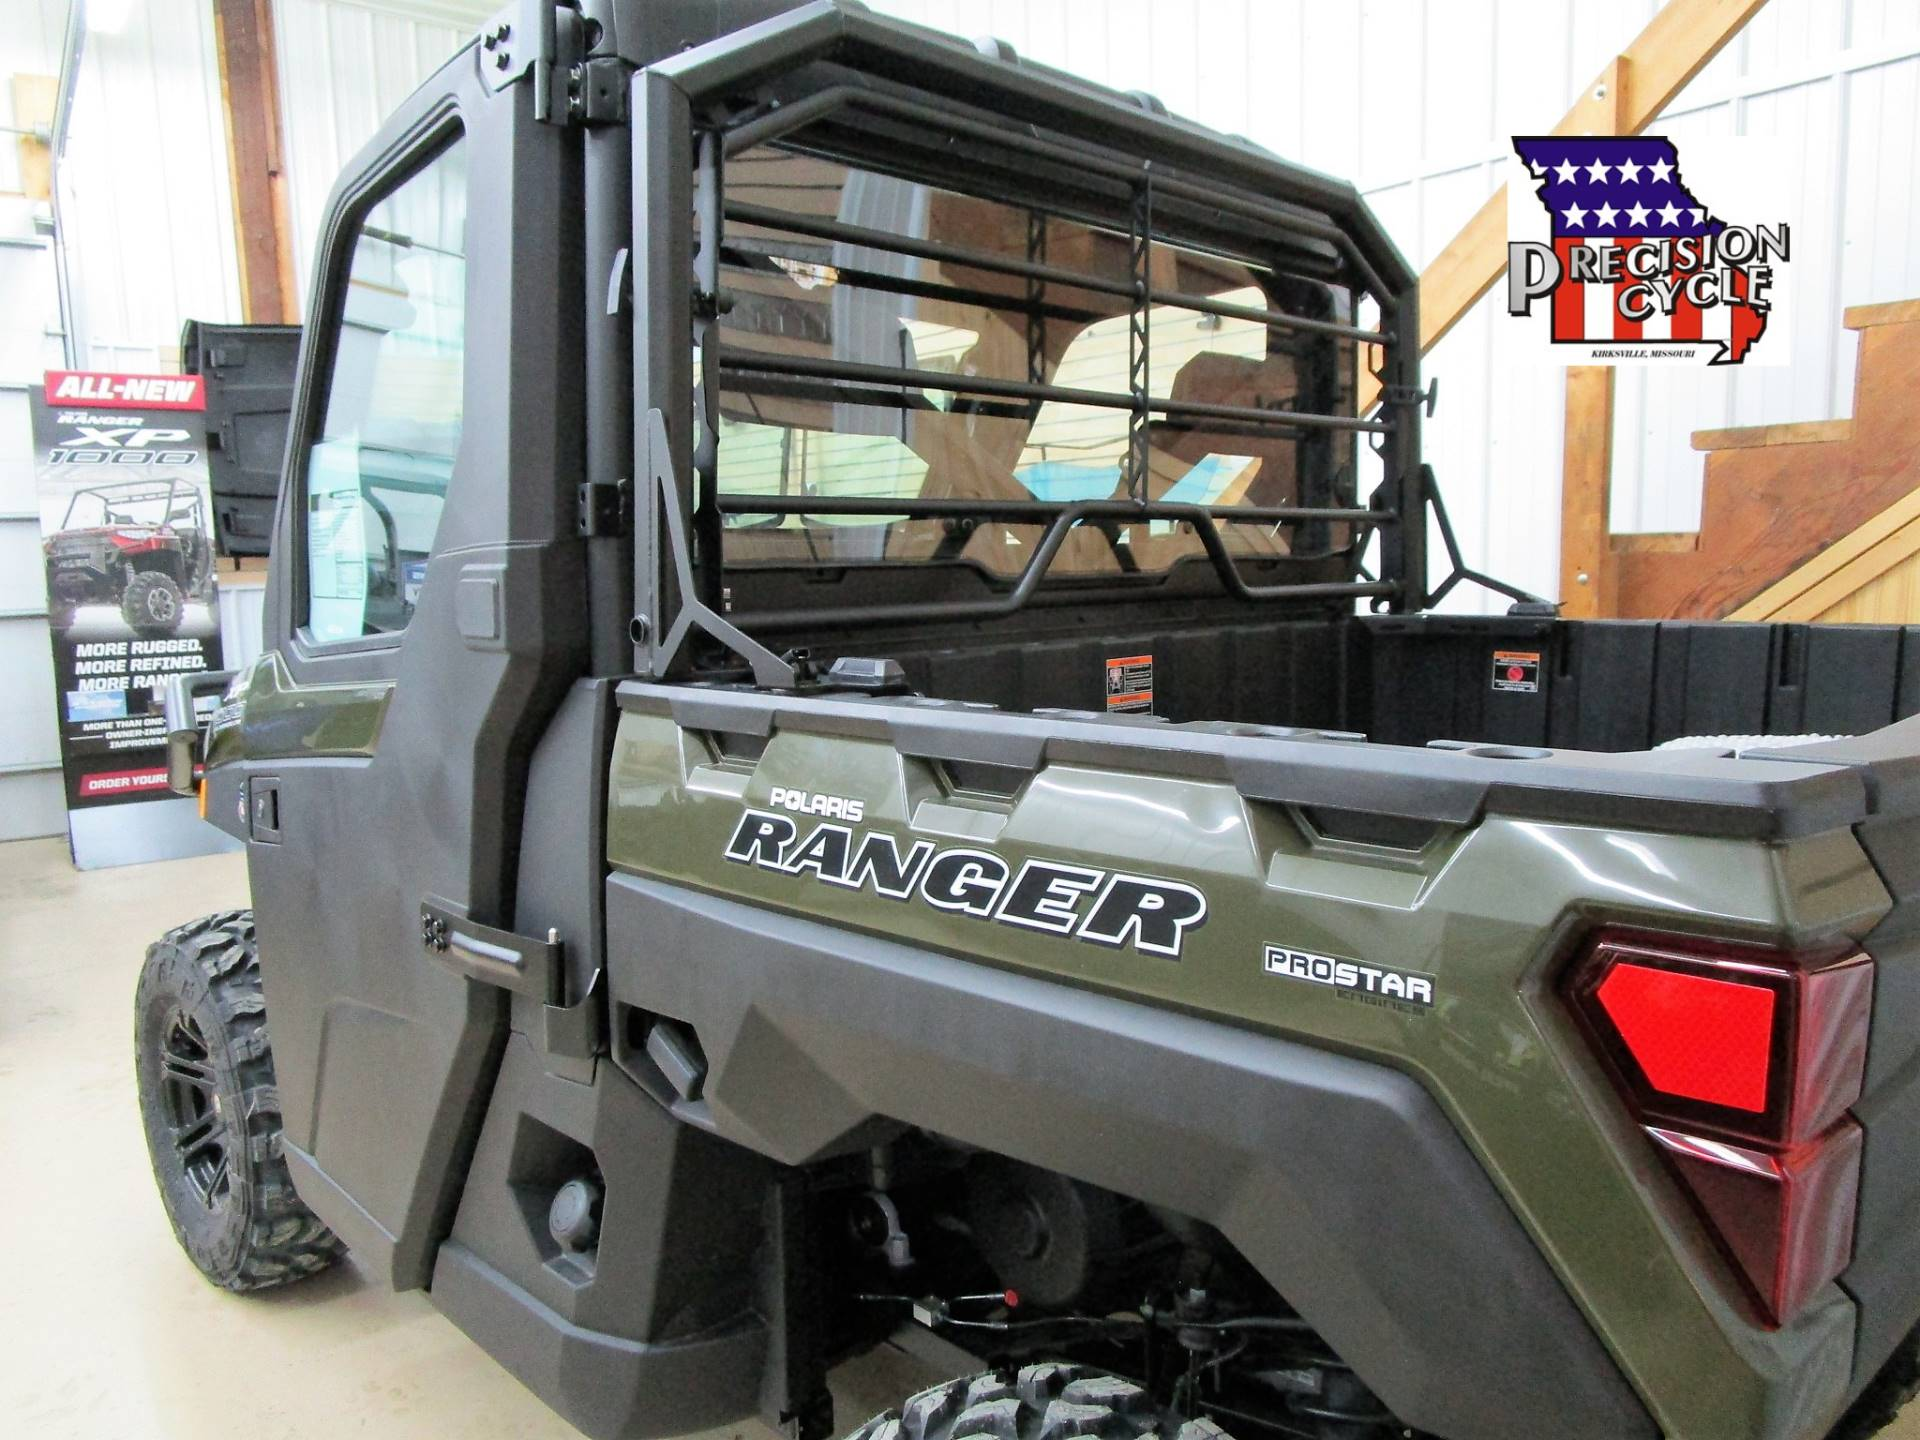 2019 Polaris Ranger XP 1000 EPS in Kirksville, Missouri - Photo 3